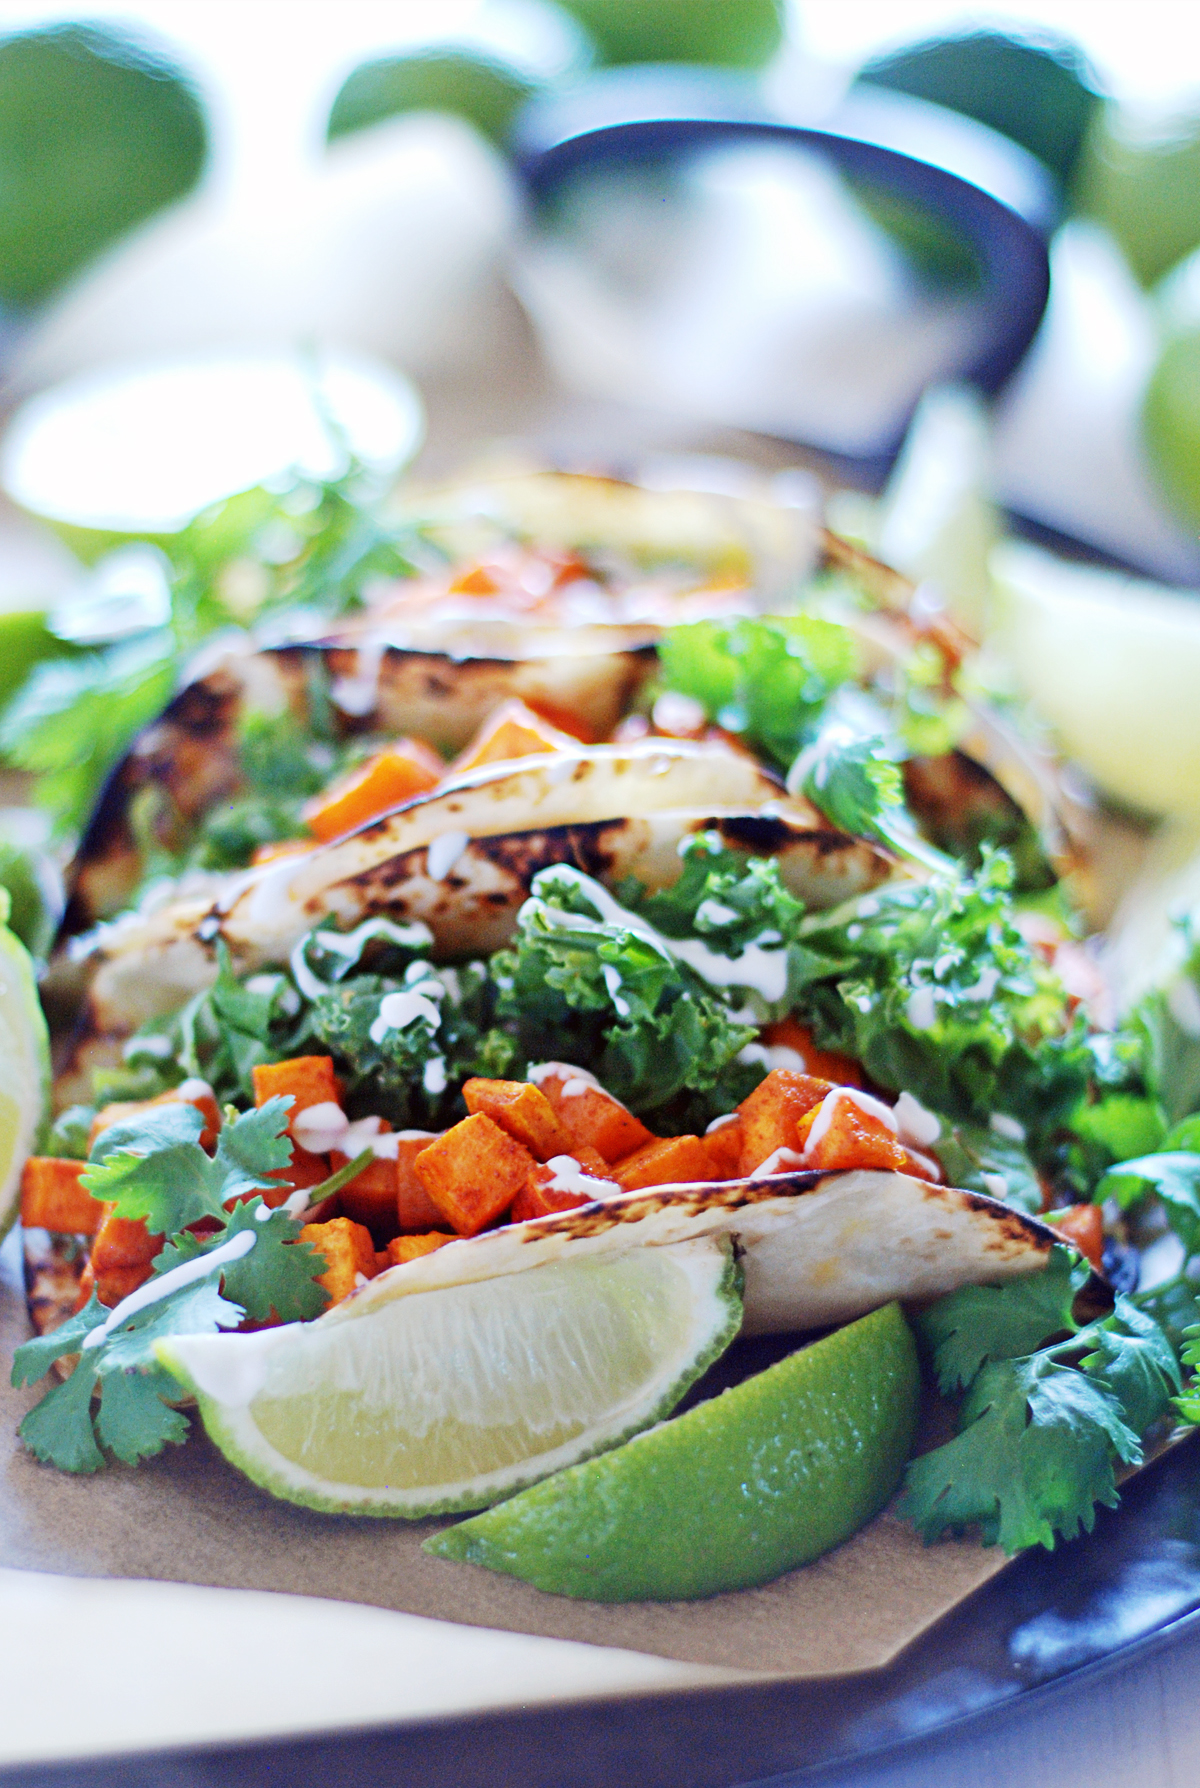 These 10 ingredient roasted sweet potato tacos with cilantro pesto, white cheddar and crema are ready in under 45 minutes!